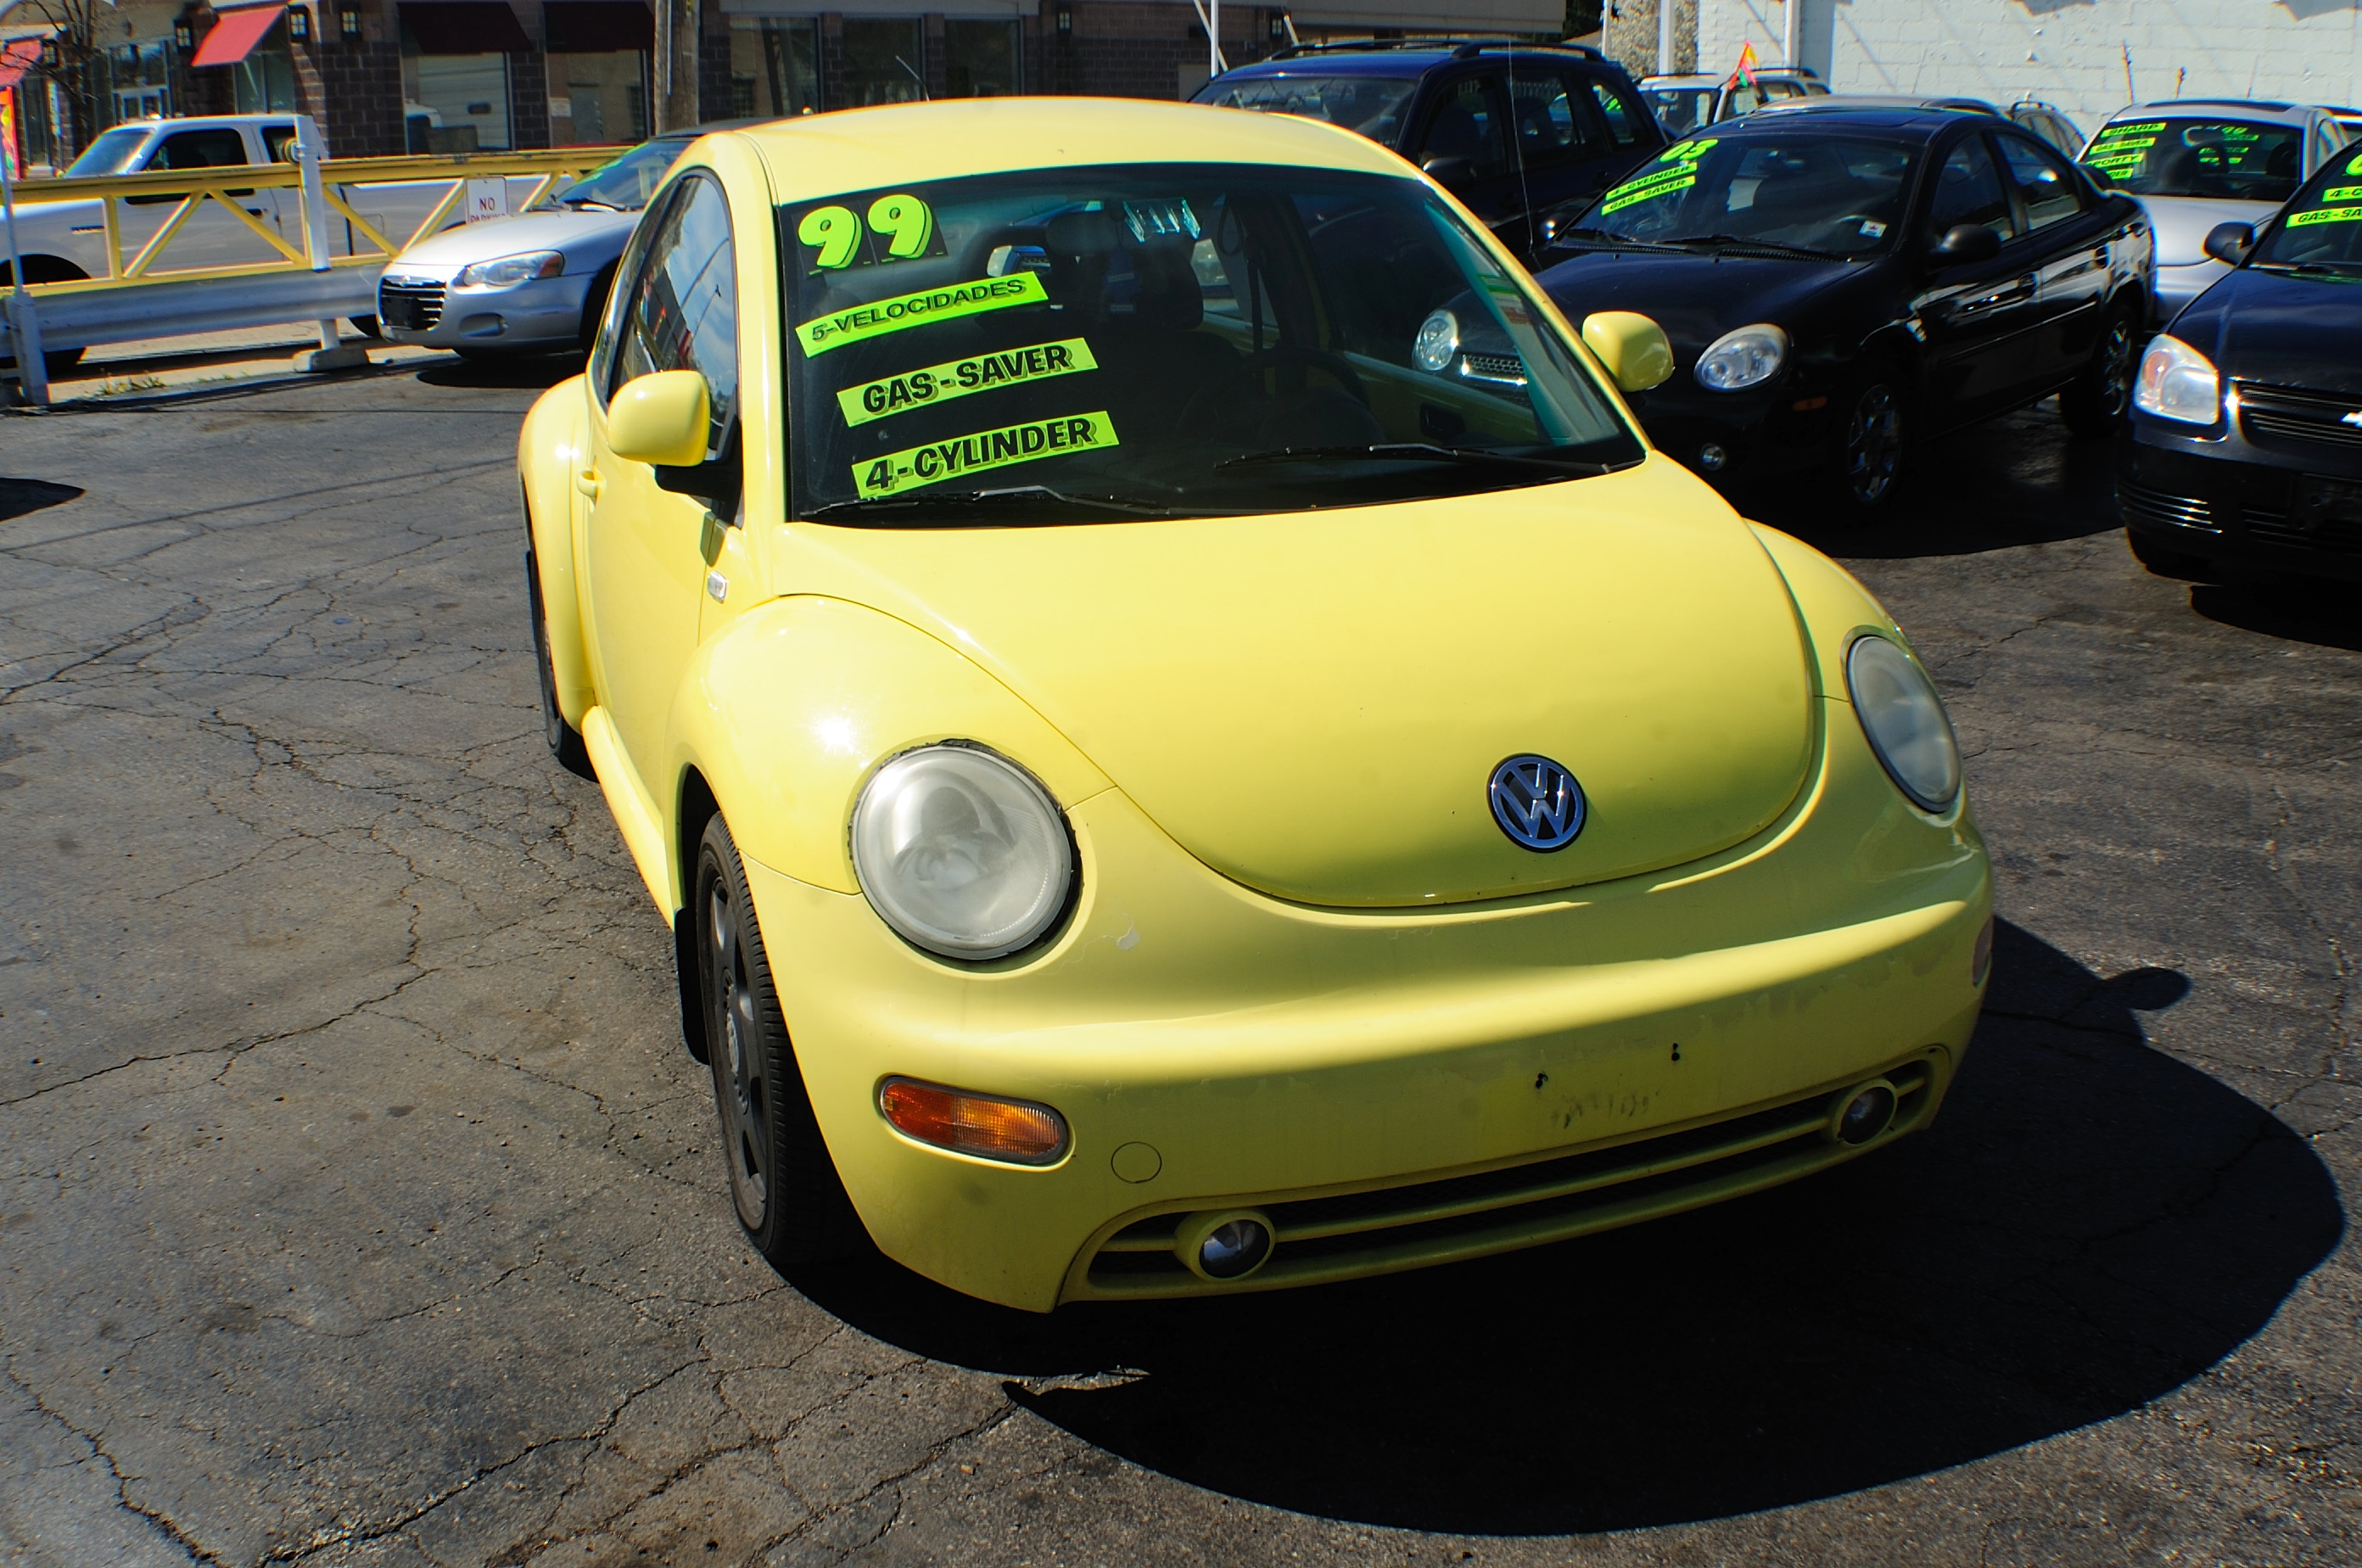 1999 Volkswagen Beetle Yellow Manual used car sale Bannockburn Barrington Beach Park